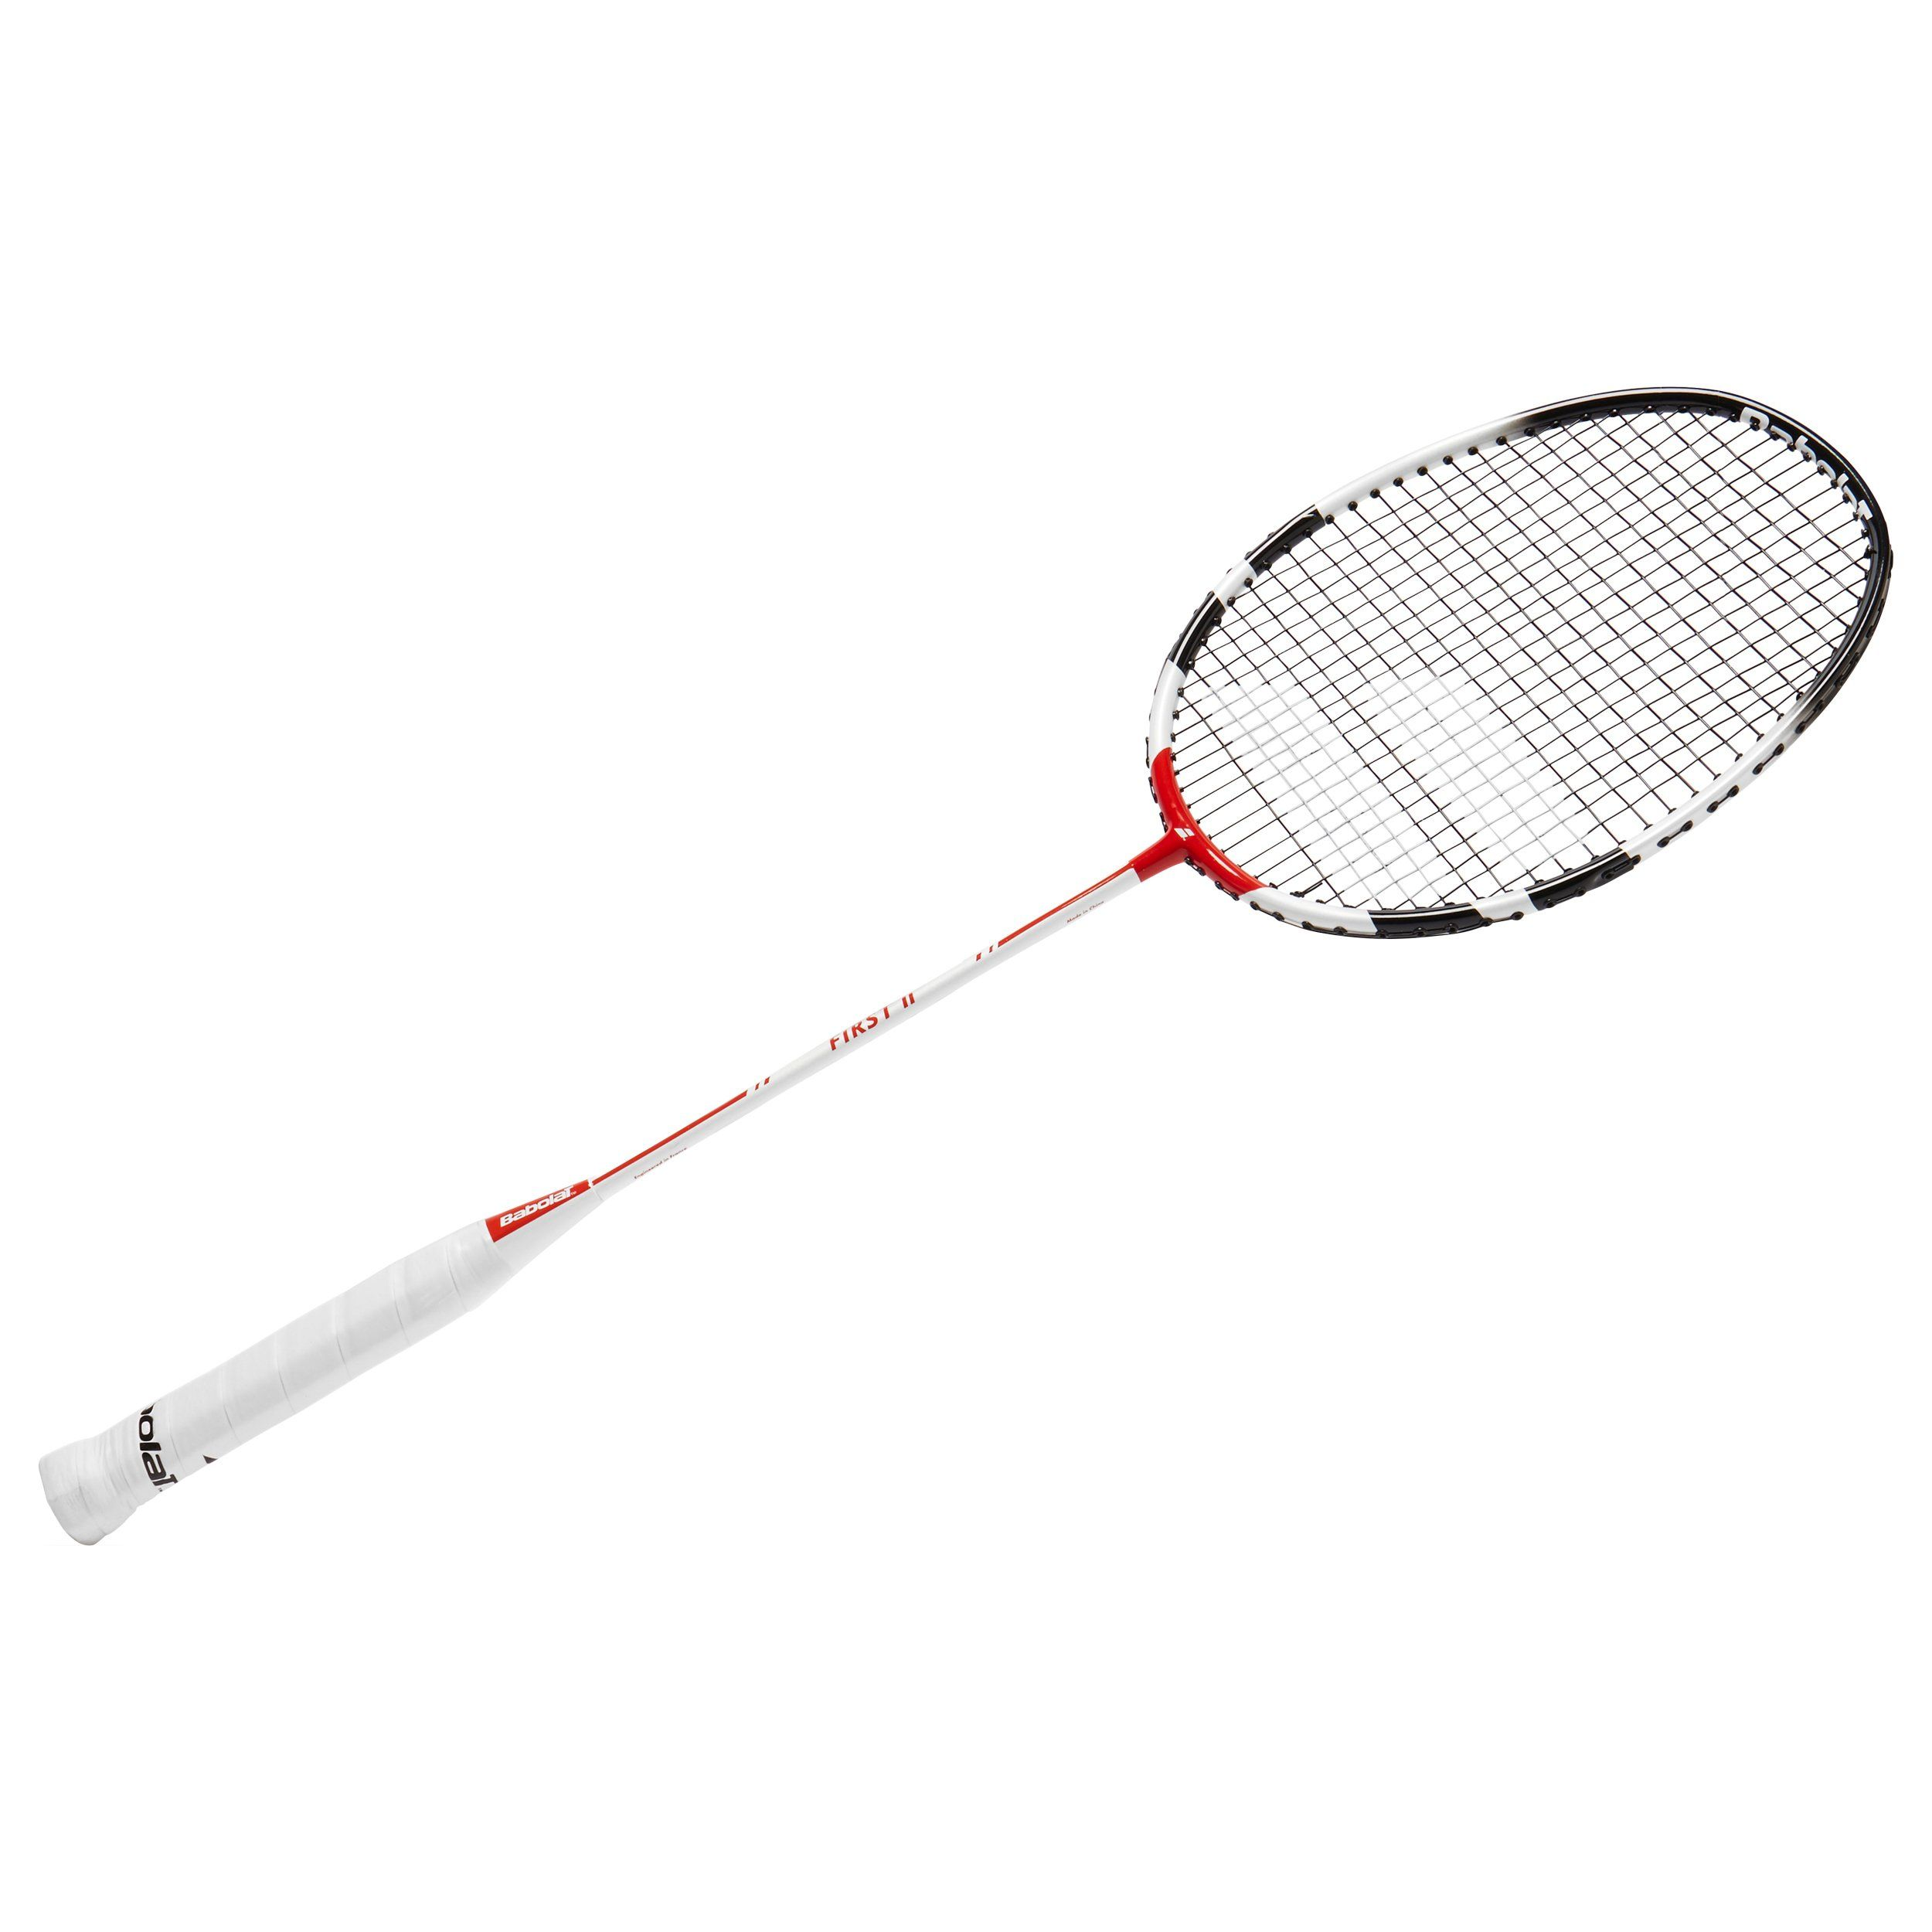 Babolat First II Junior Badminton Racket